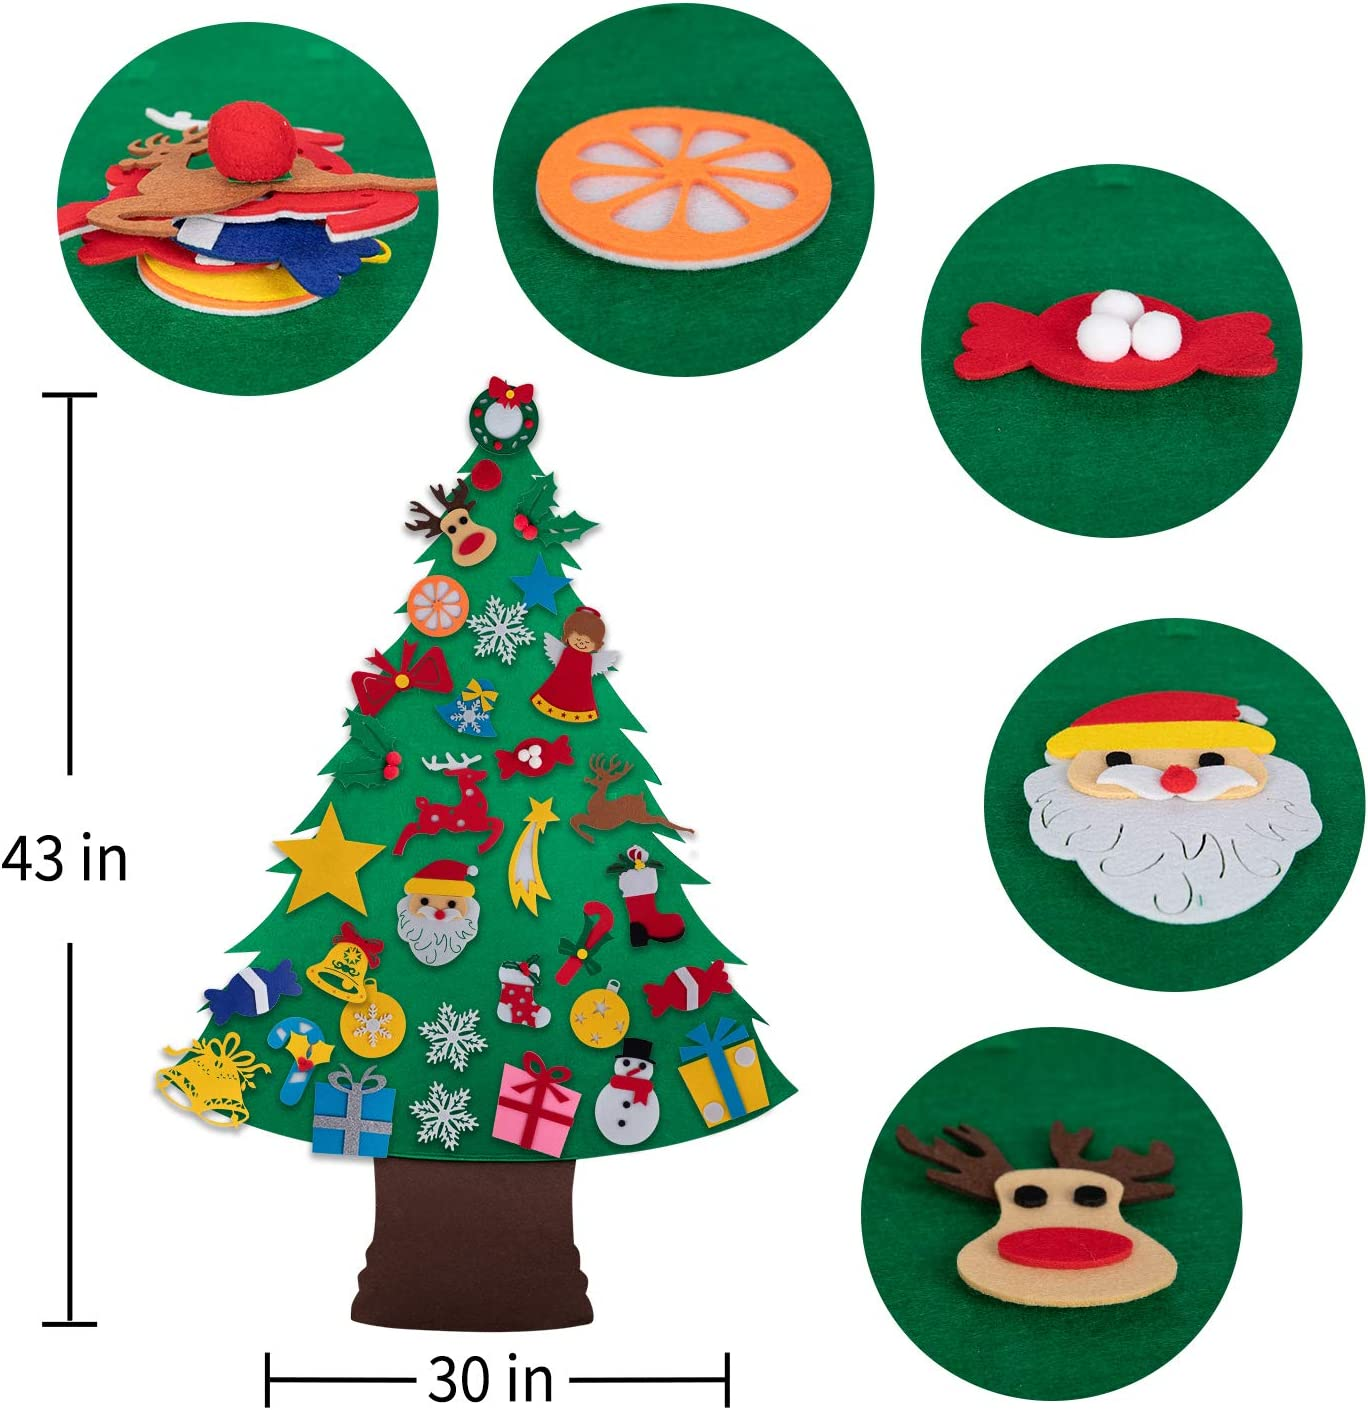 Minetom Felt Christmas Tree for Kids-33 PCS Cute Christmas Ornaments Kit with Hook /& Loop Nativity Set Crafts Gifts for Toddlers DIY Christmas Home Wall Door Classroom Hanging Decorations